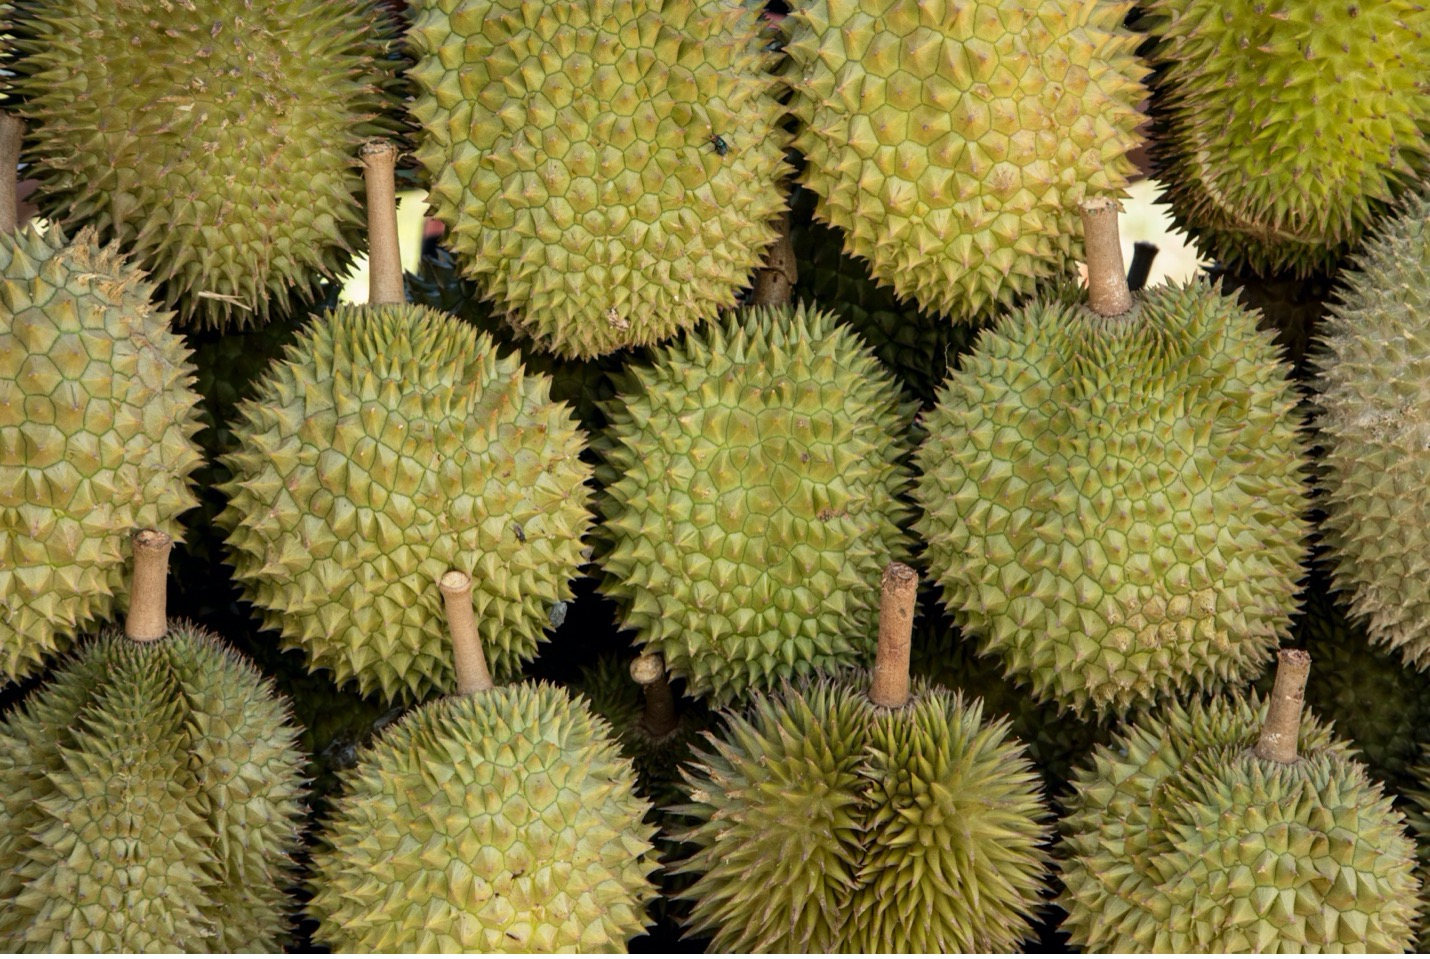 durian fruit is layered in a market in borneo